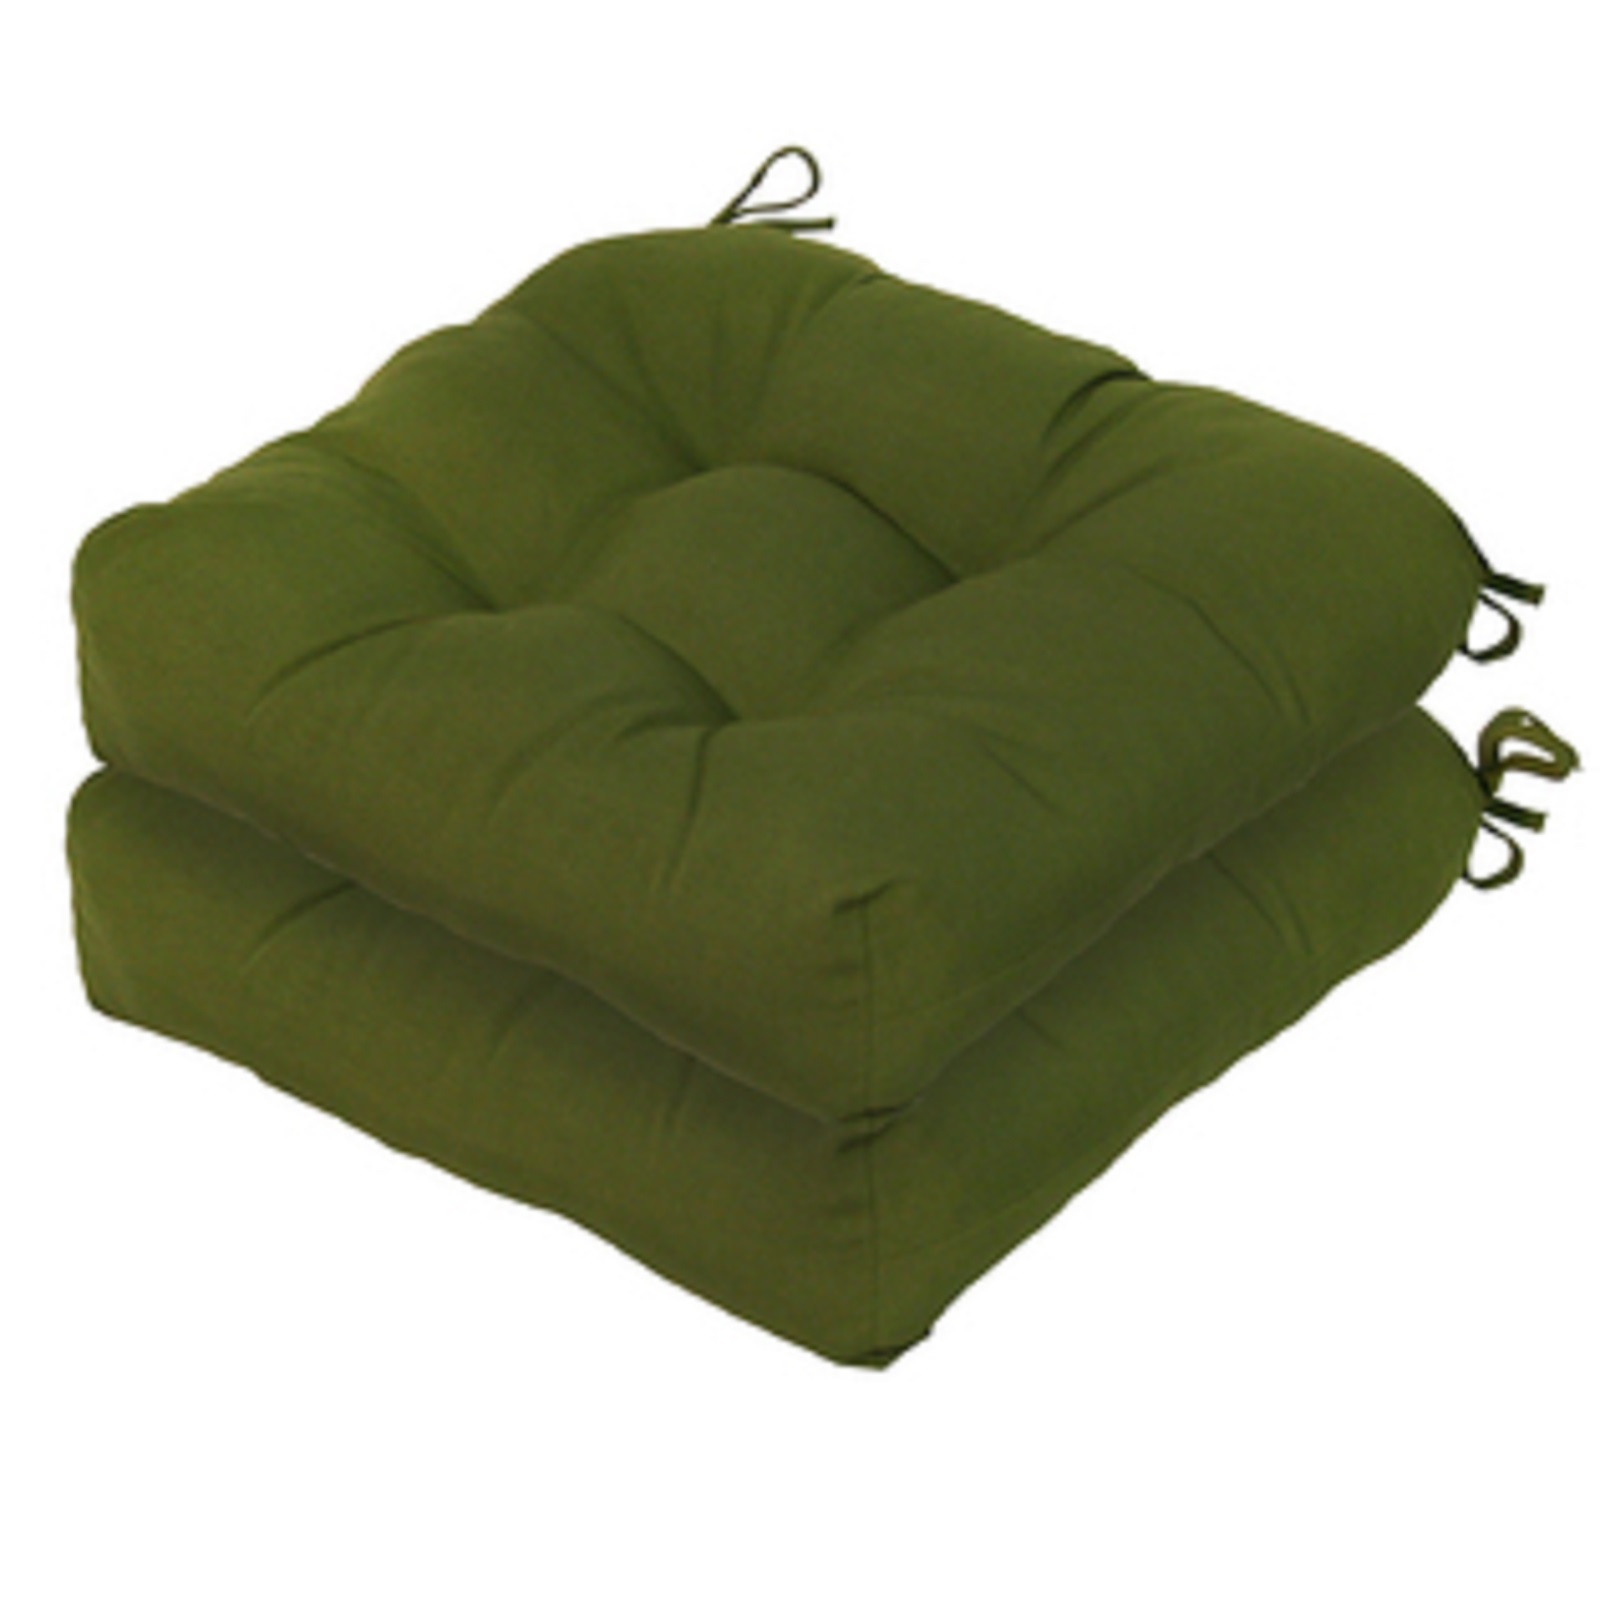 green chair cushions small upholstered swivel greendale home fashions set of two 20 quot outdoor